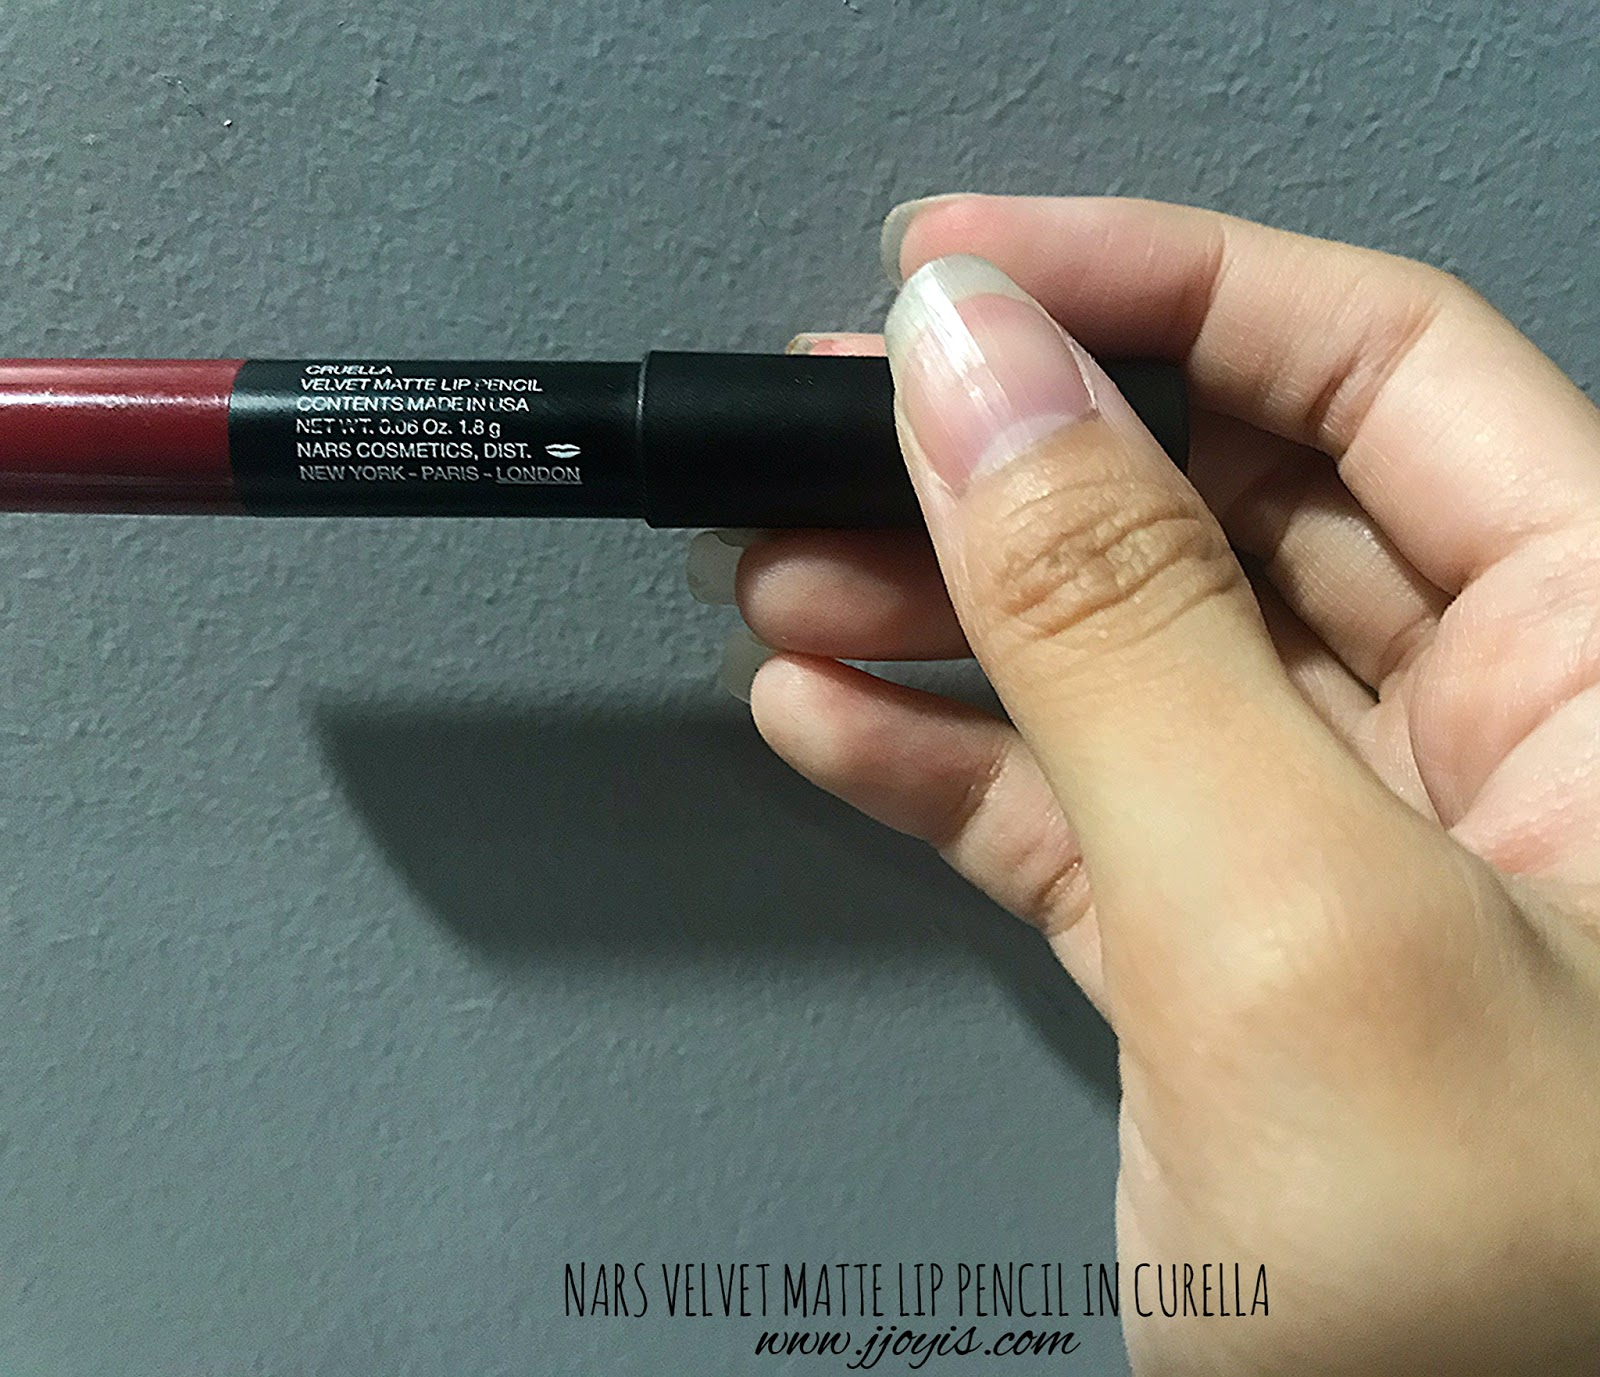 nars velvet matte lip pencil curella review